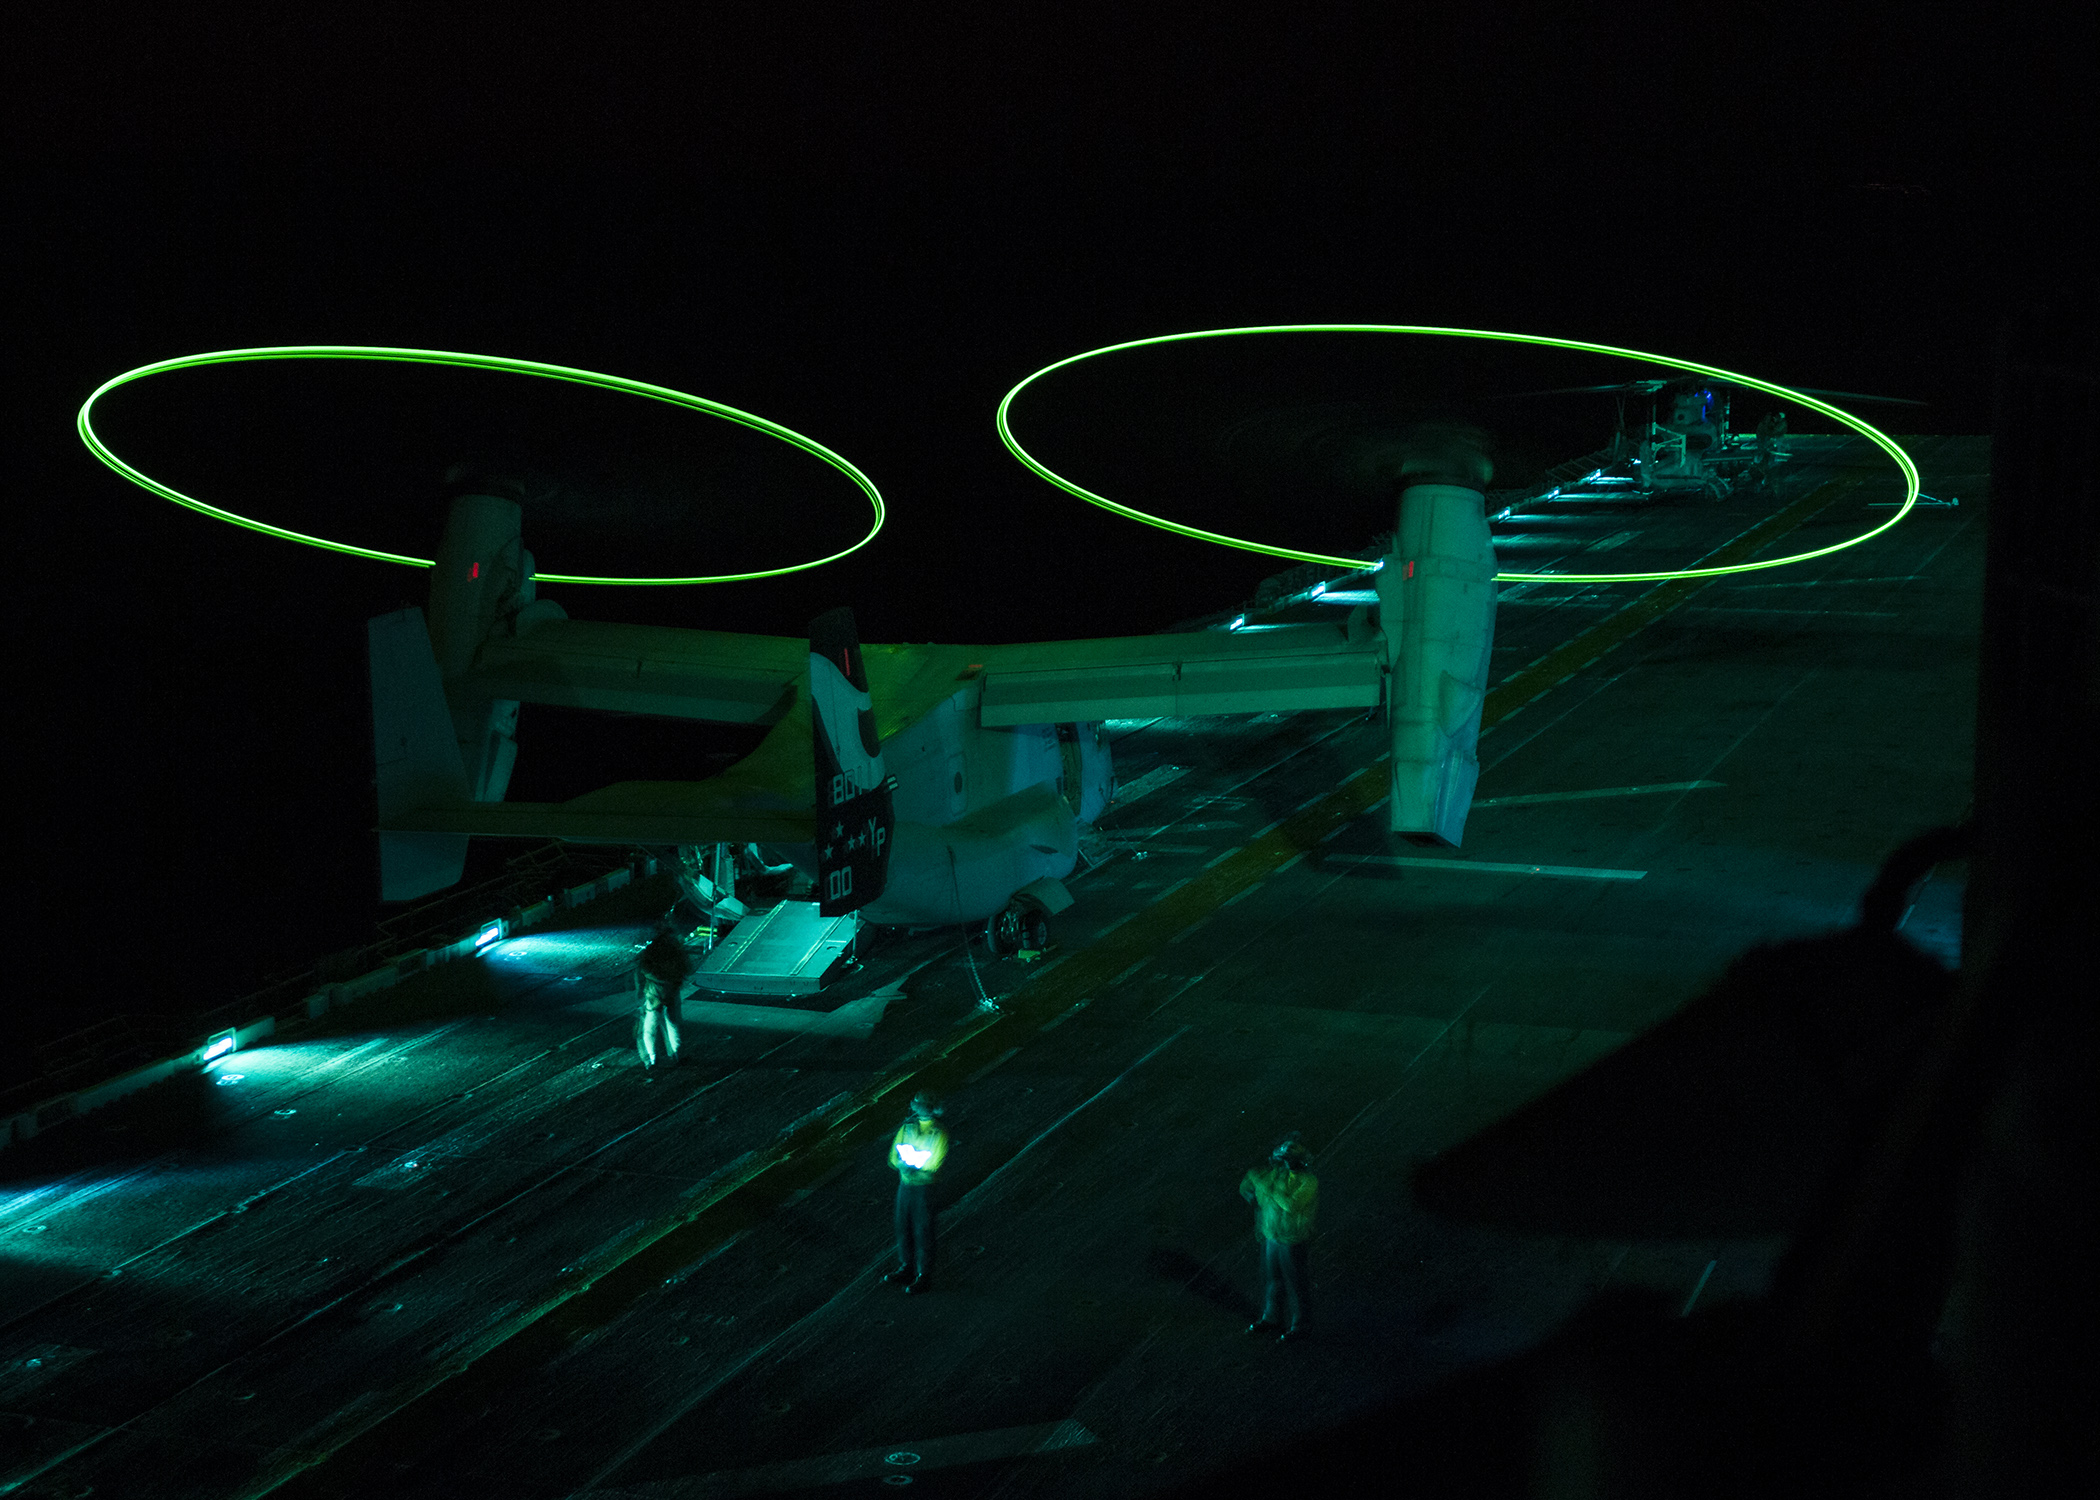 ARABIAN GULF (Sept. 18, 2014) An MV-22 Osprey displays static lights while performing operational testing during night vision device flight operations aboard the amphibious assault ship USS Makin Island (LHD 8). Makin Island is the flagship of the Makin Island Amphibious Ready Group and, with the 11th Marine Expeditionary Unit (11th MEU), is deployed in support of maritime security operation and theater security cooperation efforts in the U.S. 5th Fleet area of responsibility. (U.S. Navy photo by Mass Communication Specialist 3rd Class Robin W. Peak/Released)